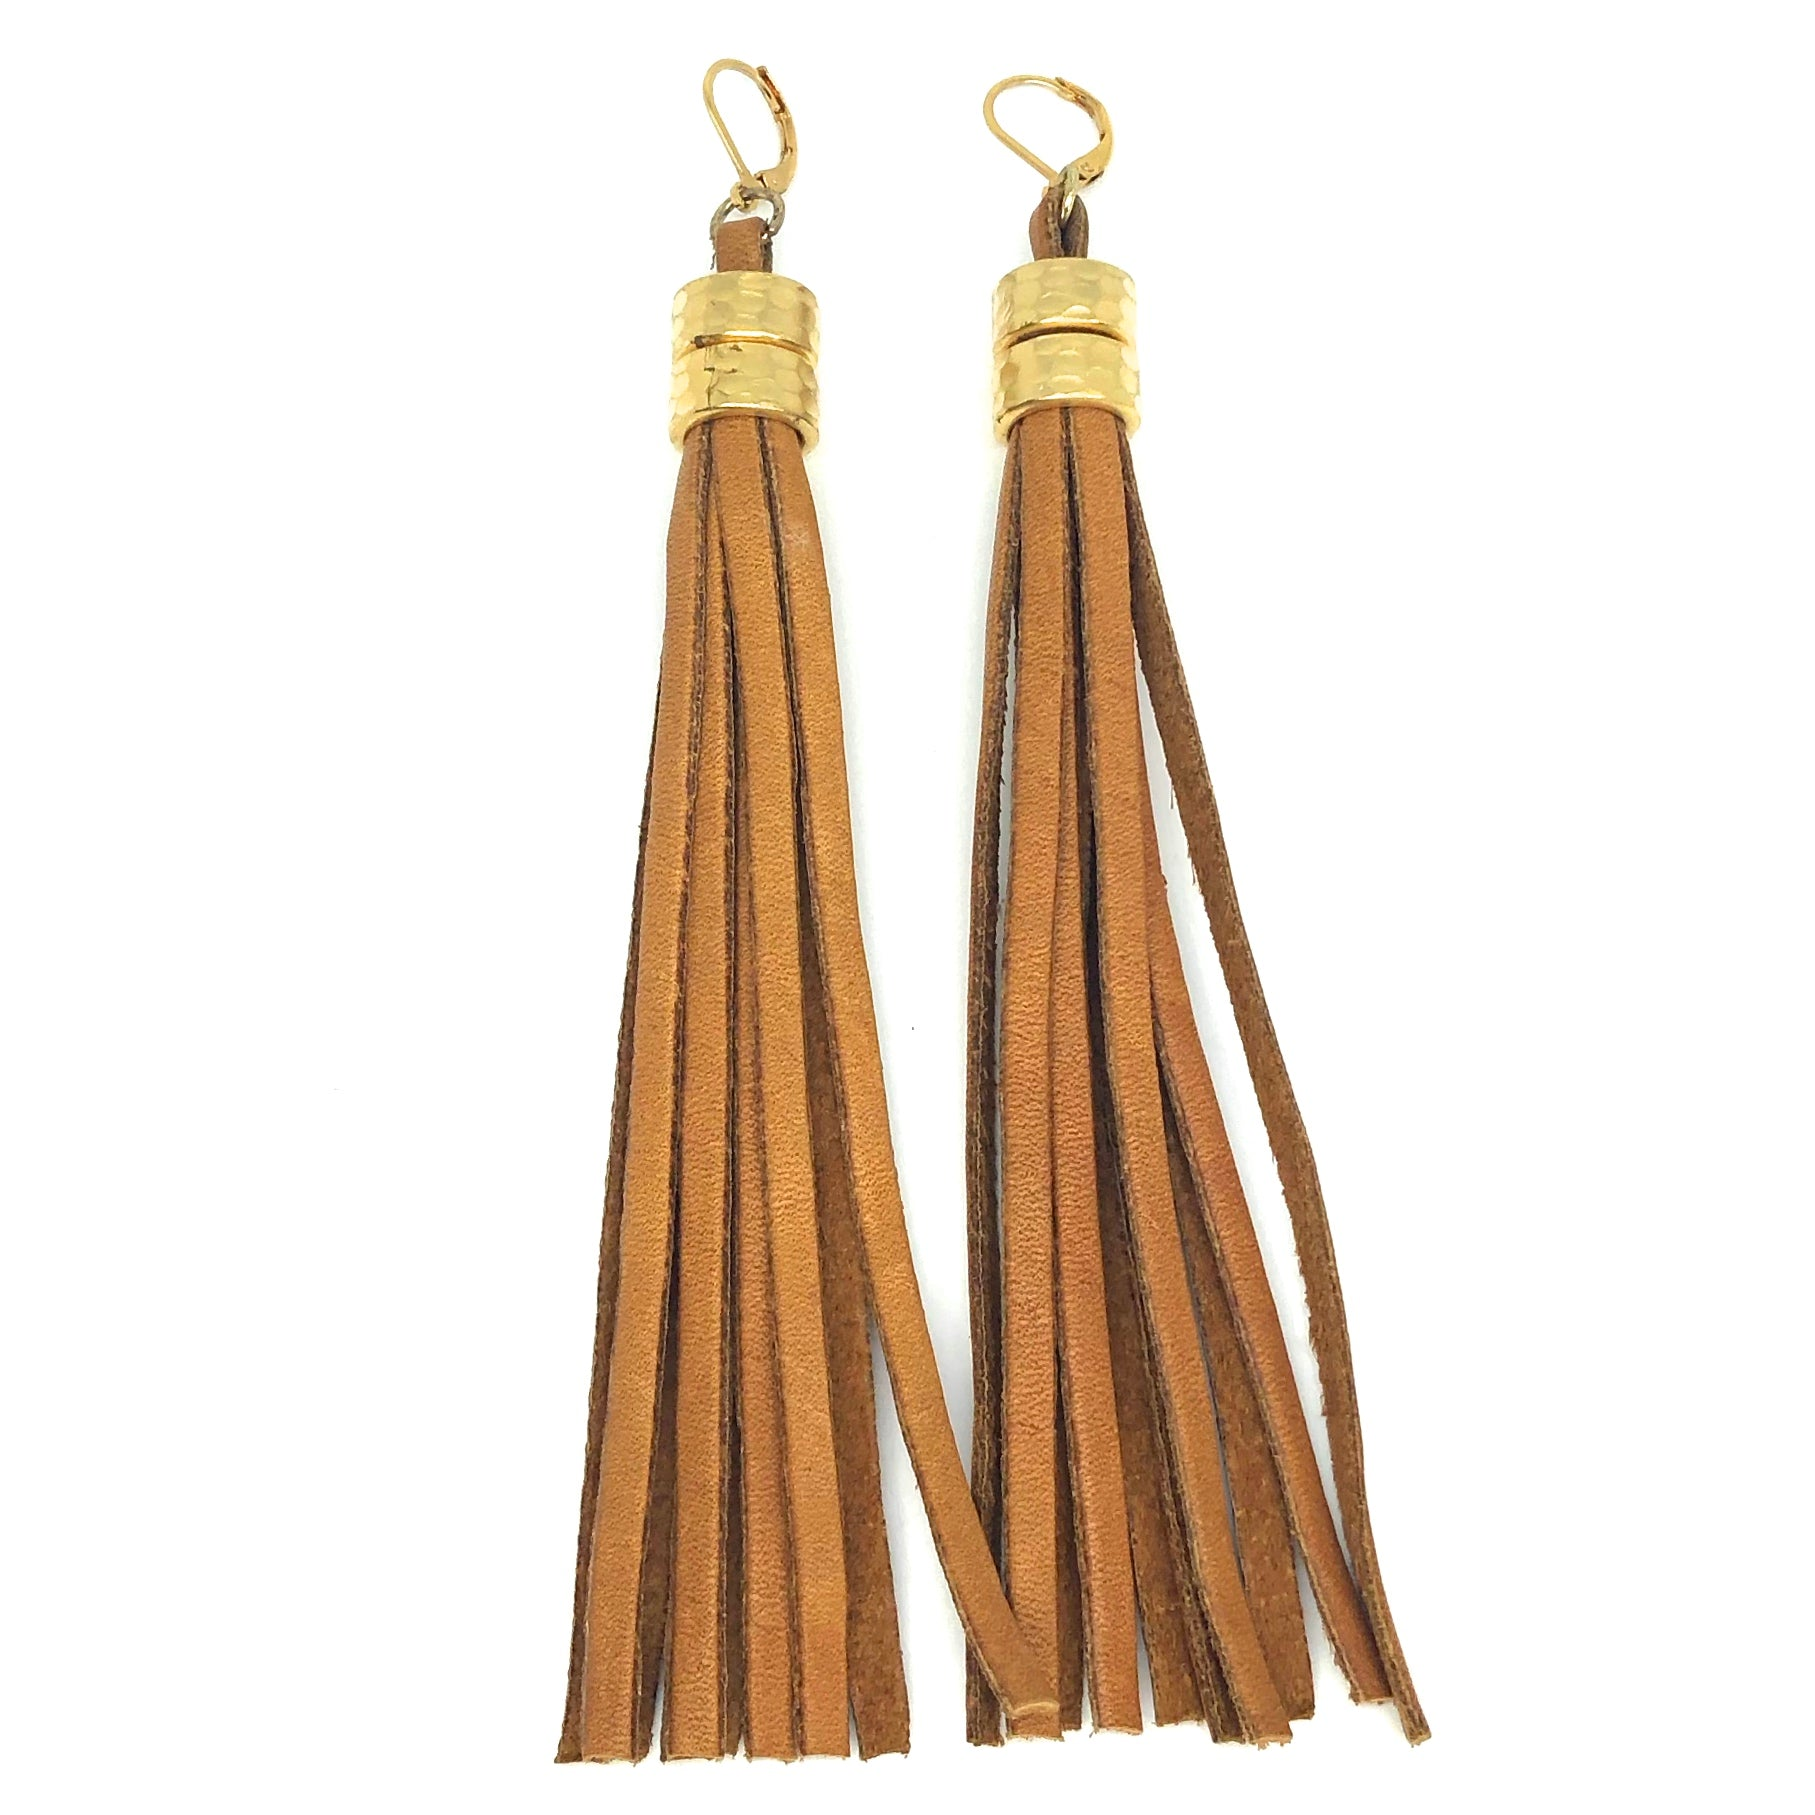 nyet jewelry HAMMERED STEEL AND DEERSKIN LEATHER earrings